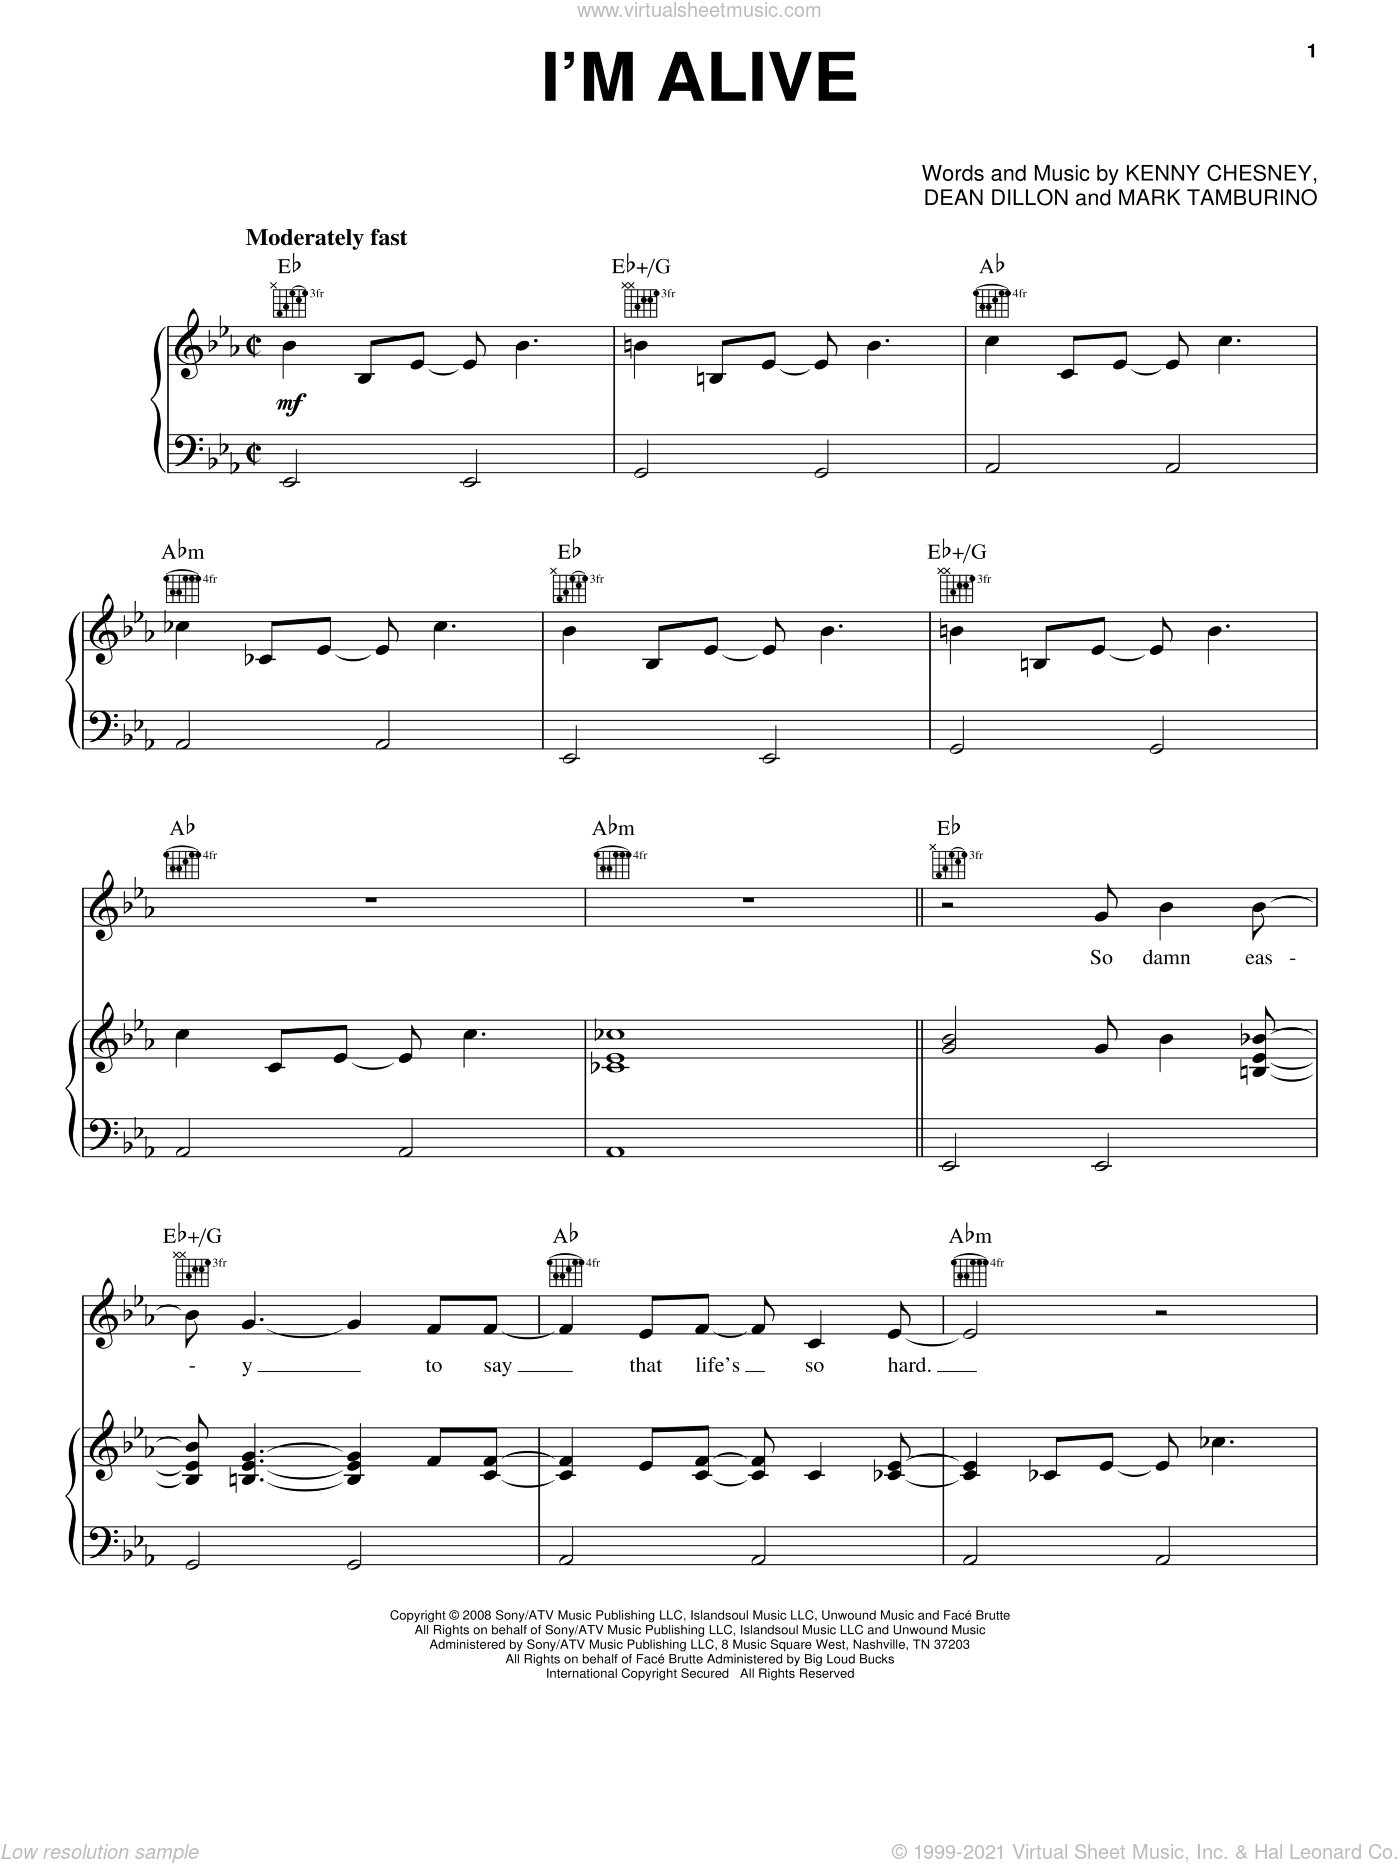 I'm Alive sheet music for voice, piano or guitar by Mark Tamburino